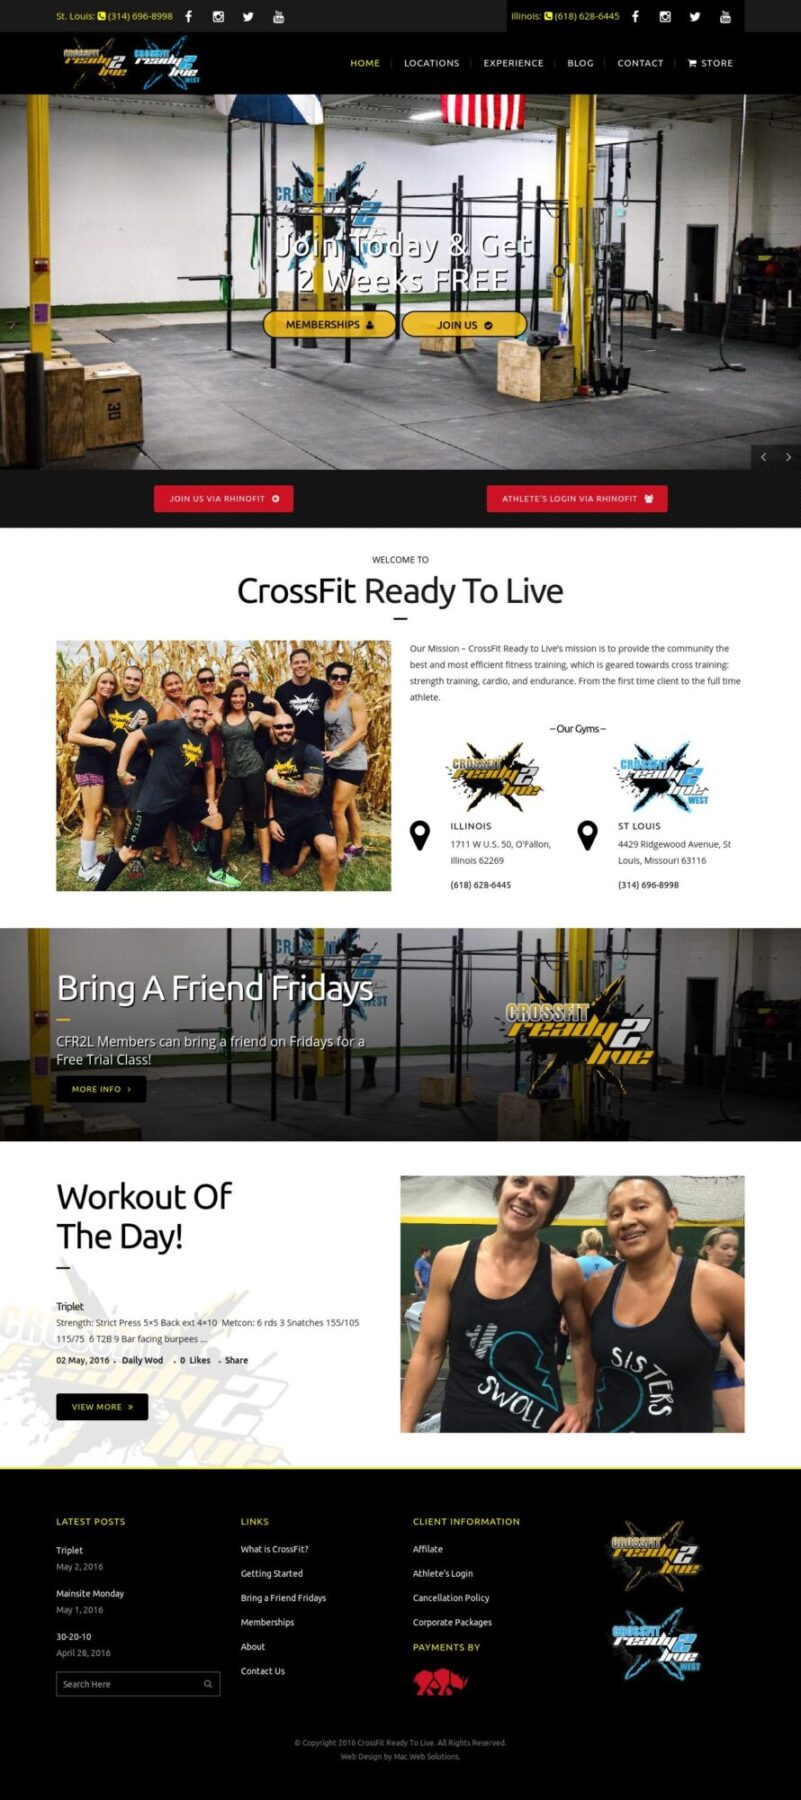 CrossFit Ready To Live website